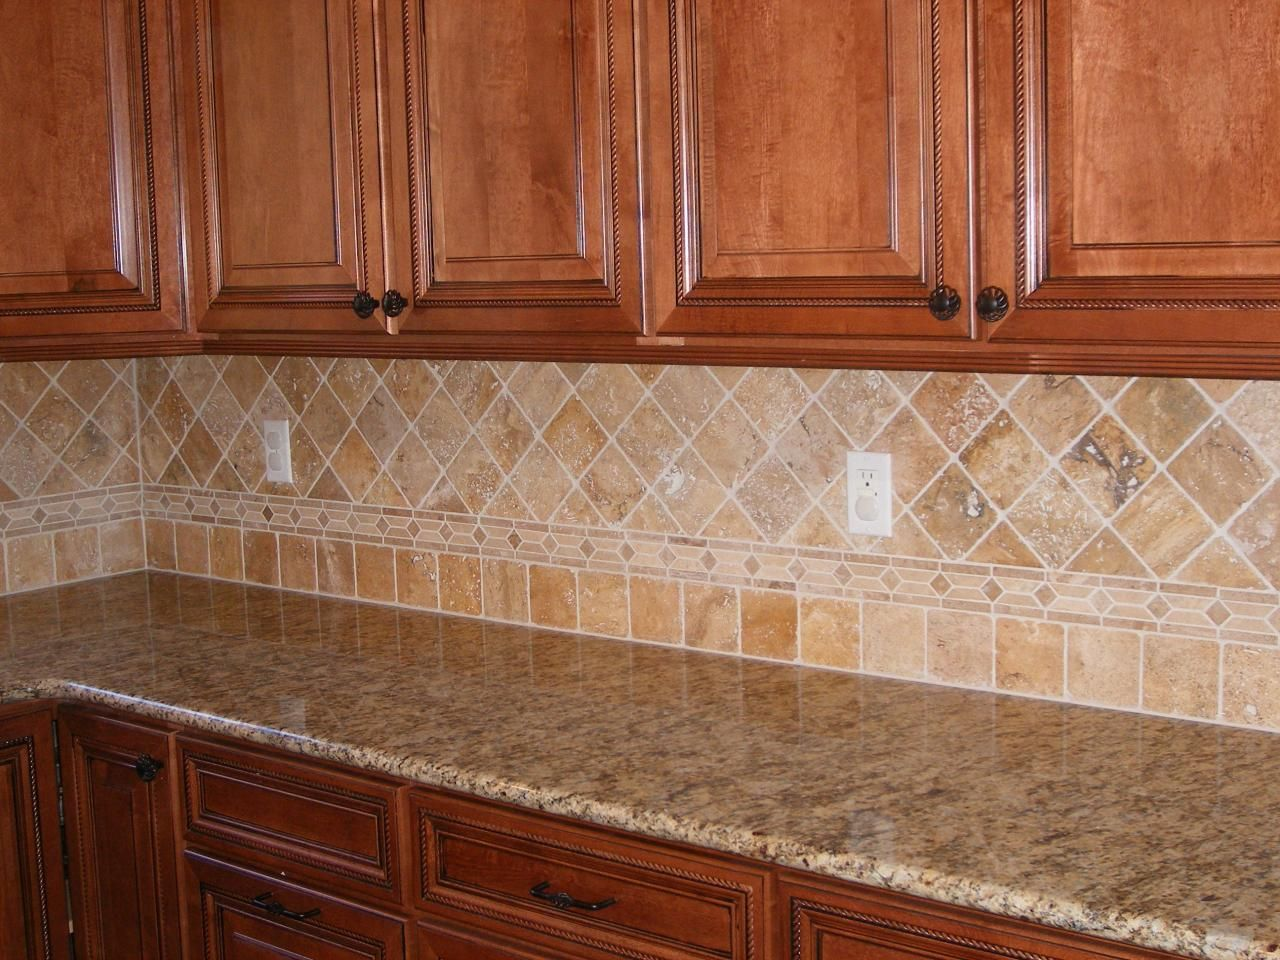 Travertine backsplash | kitchen backsplashes | Pinterest | Cocinas y ...